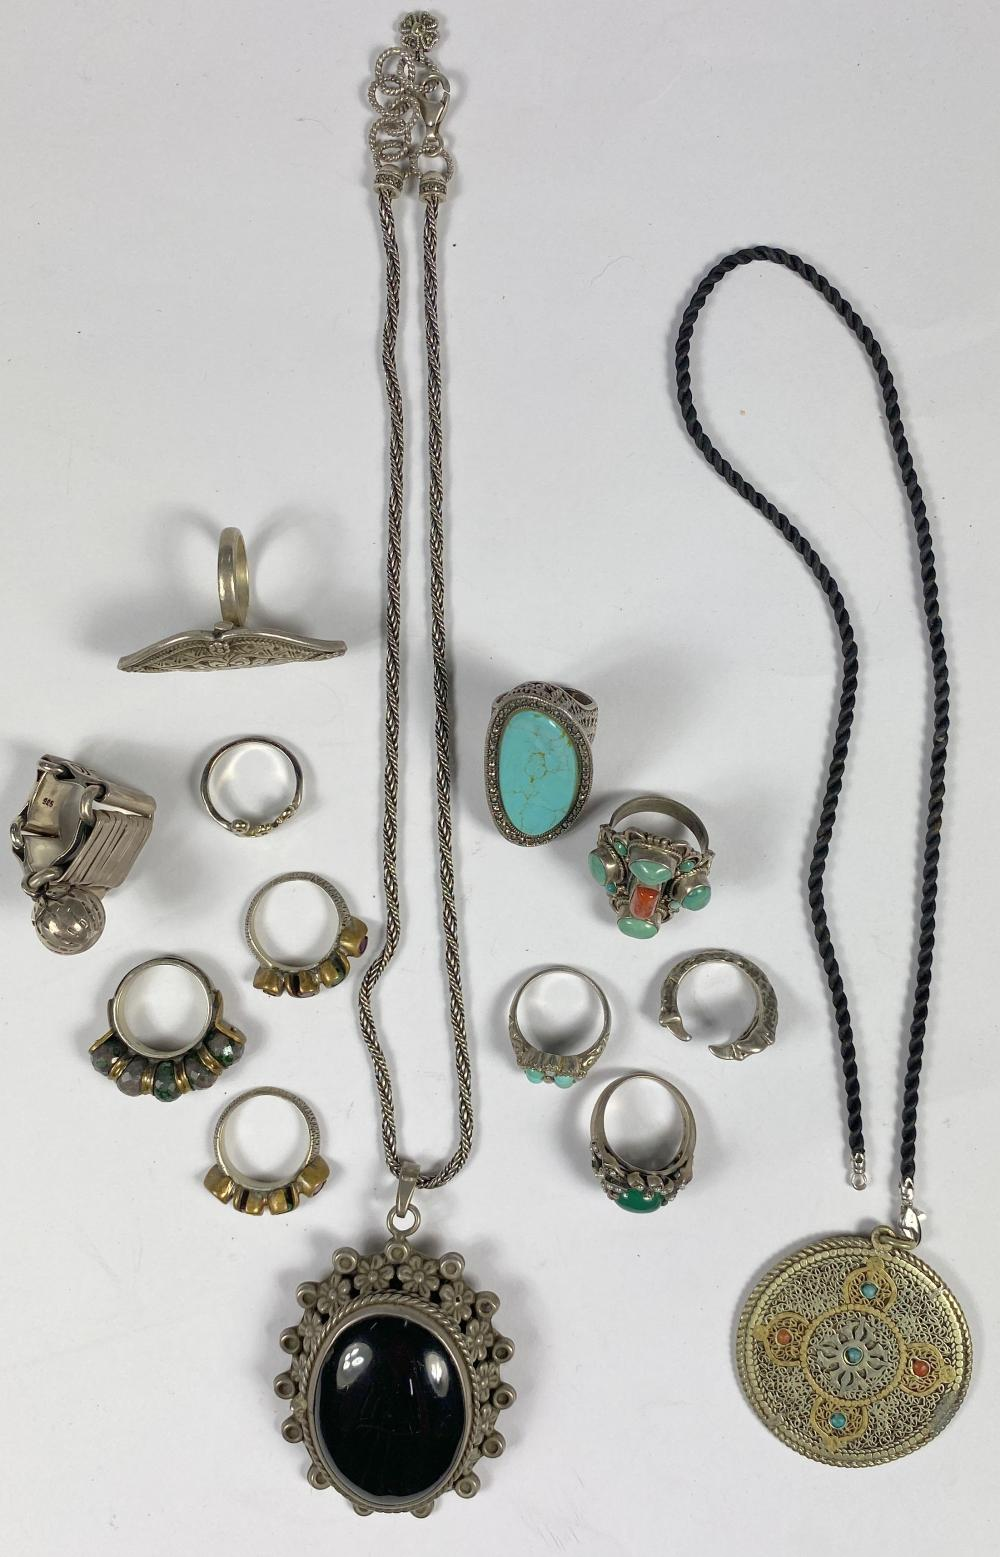 A Collection of Indian Silver & Stone Jewellery including Pendants & Rings